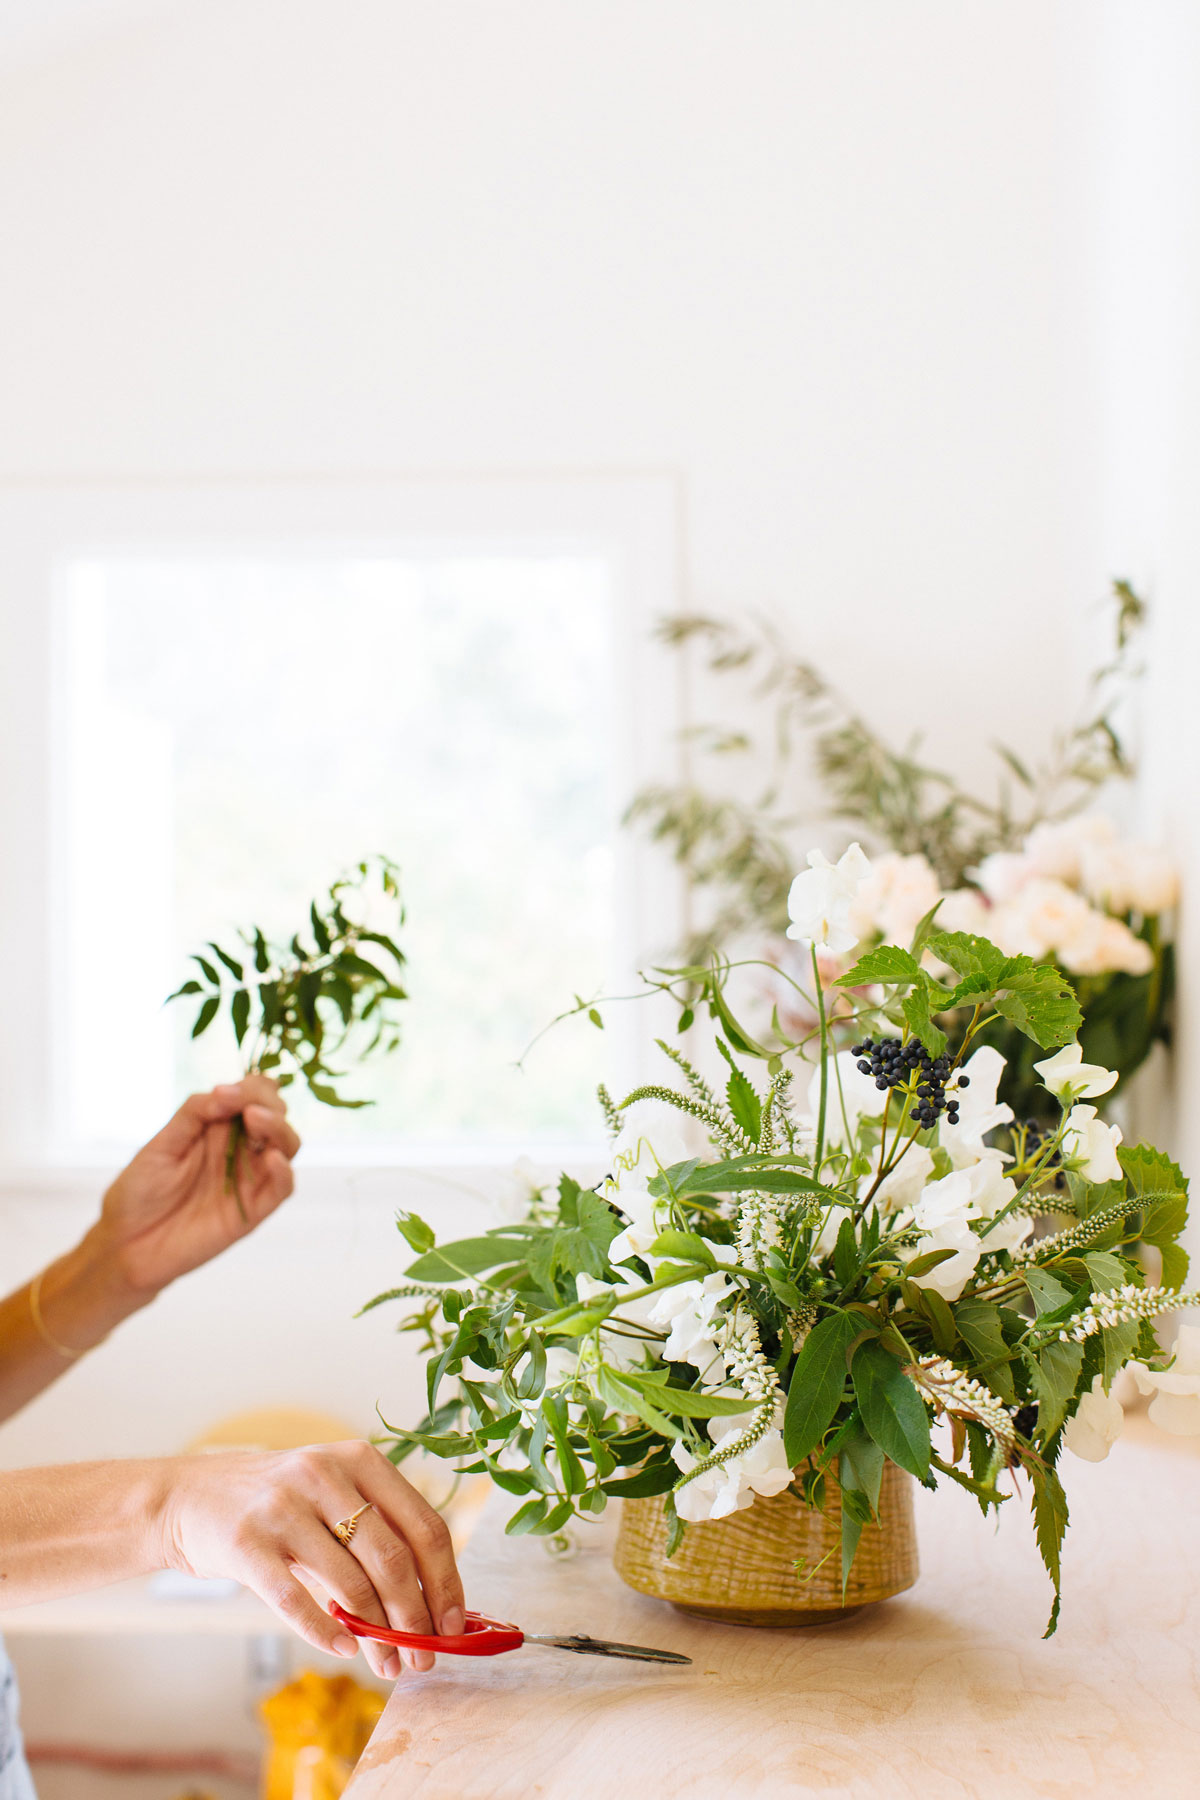 10 Insider Tips on Floral Arranging From a Pro